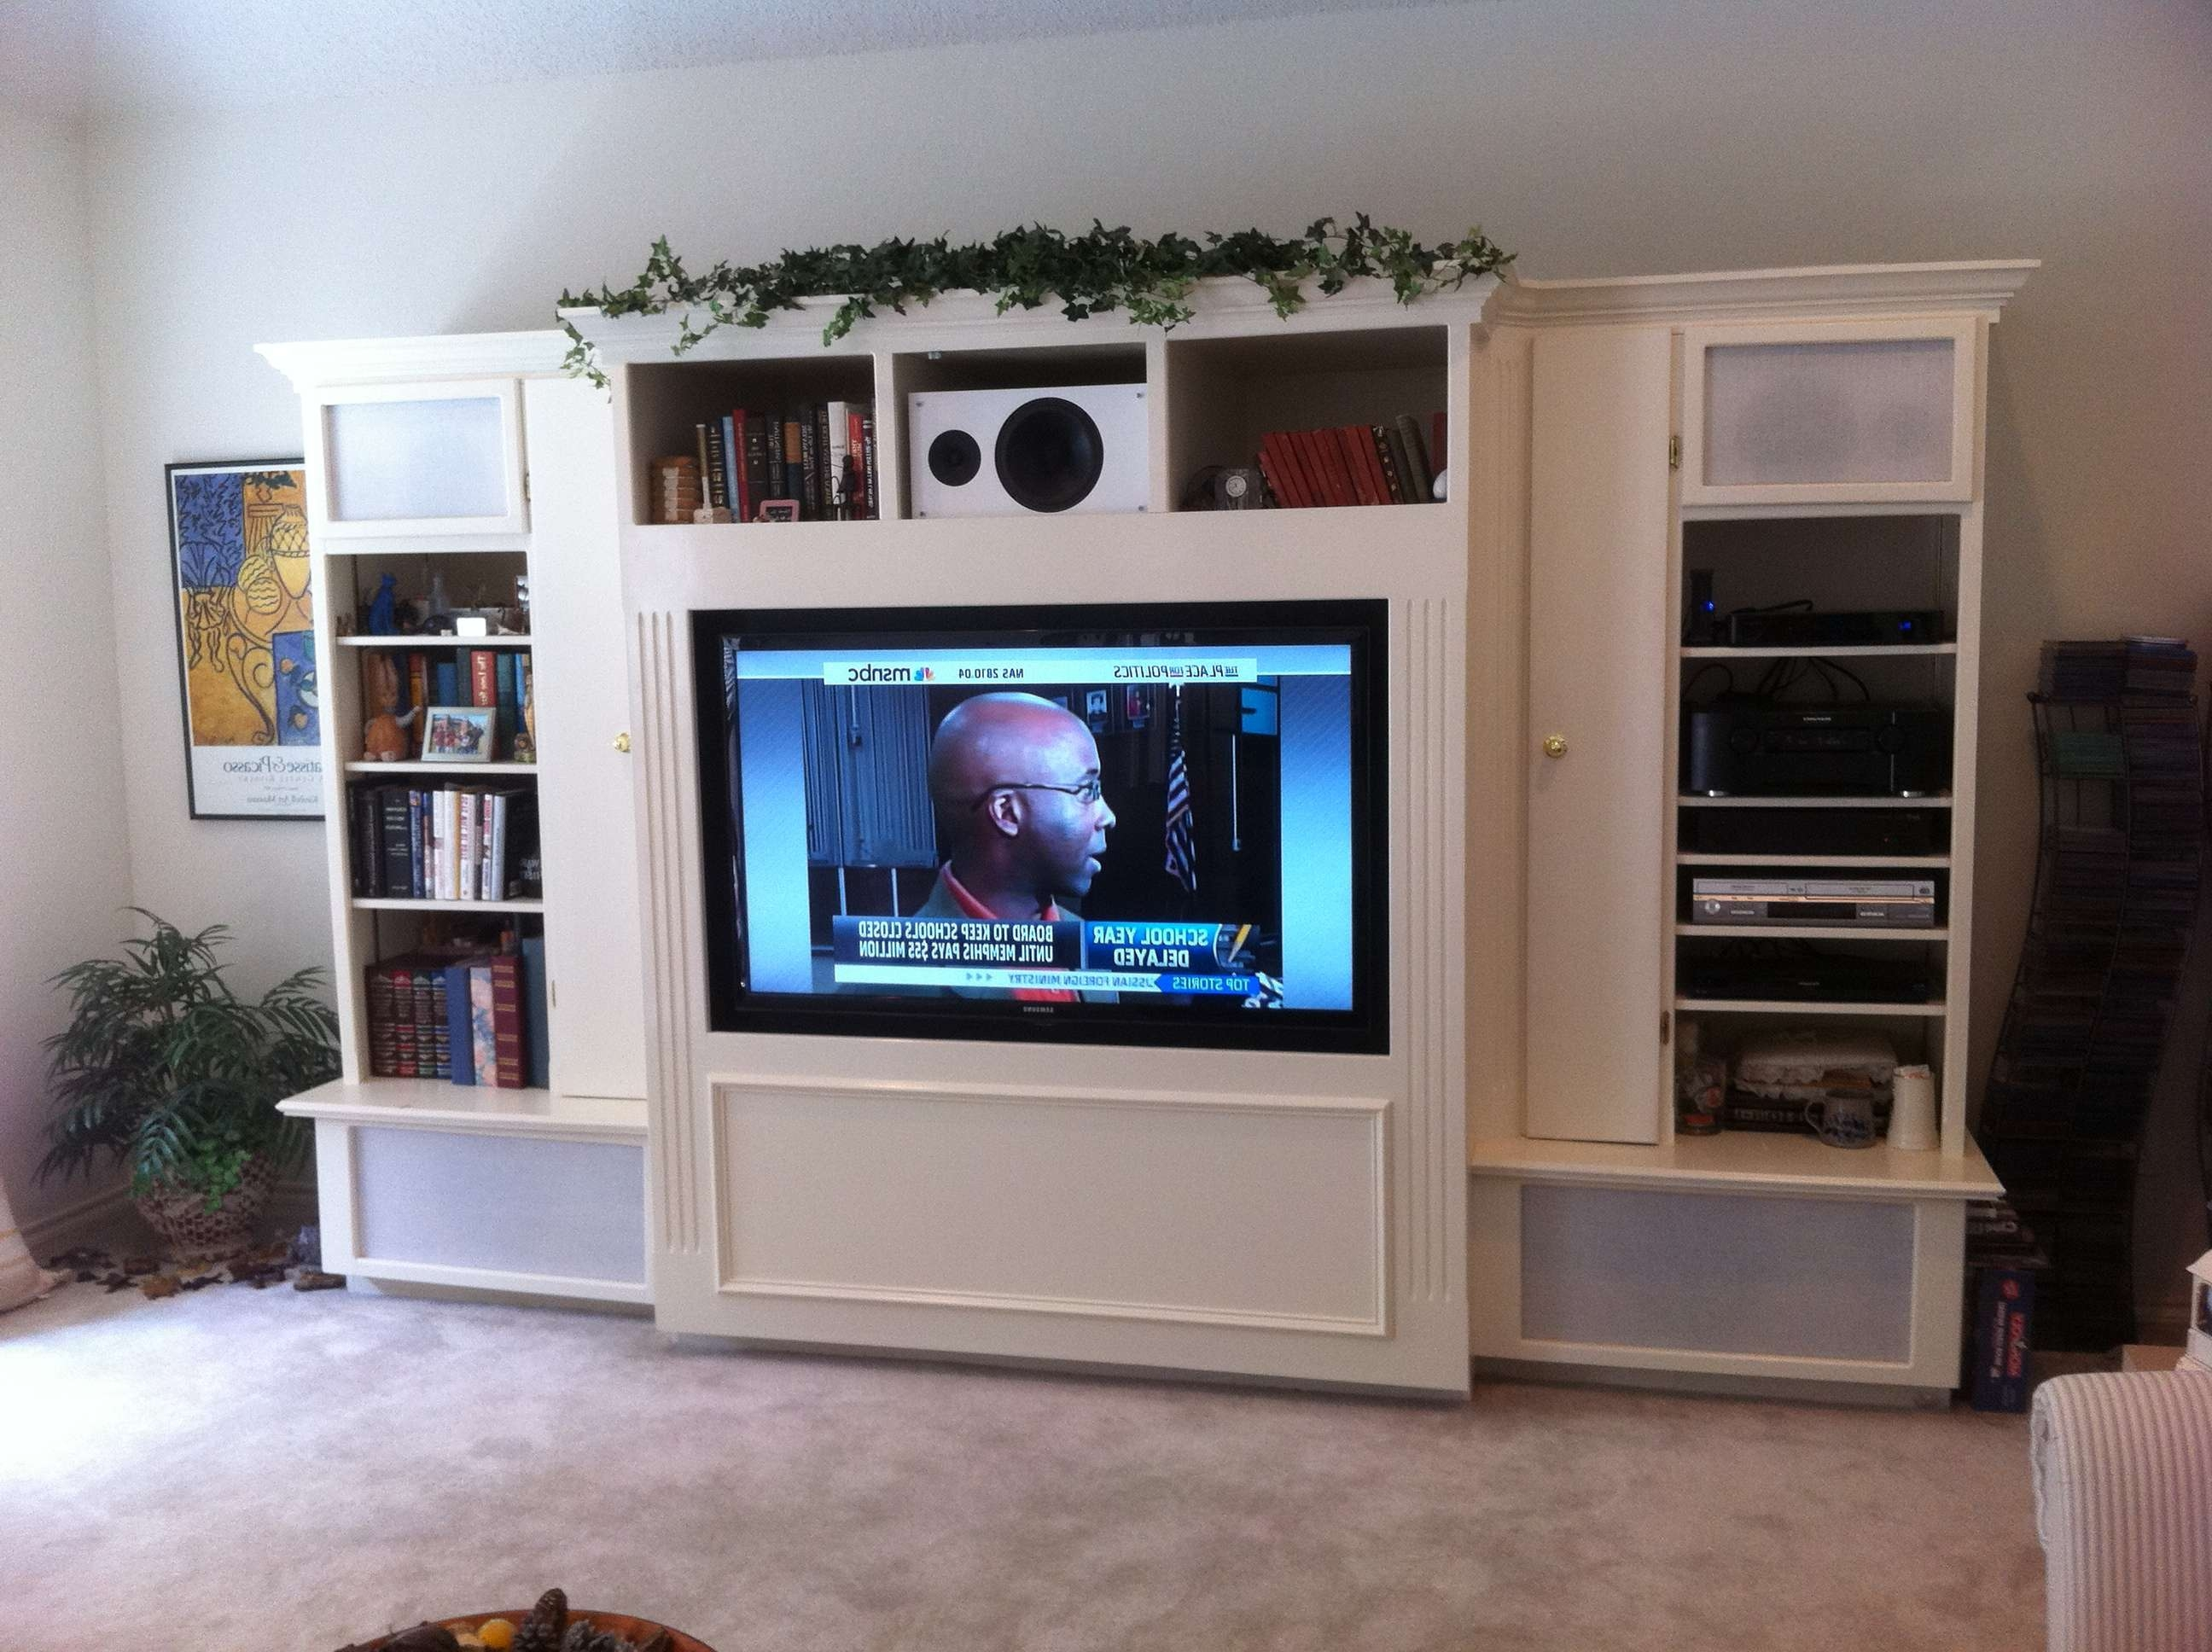 White Wooden Cabinet And Shelves Also Rectangle Black Flat Screen Regarding Glass Tv Cabinets With Doors (View 17 of 20)